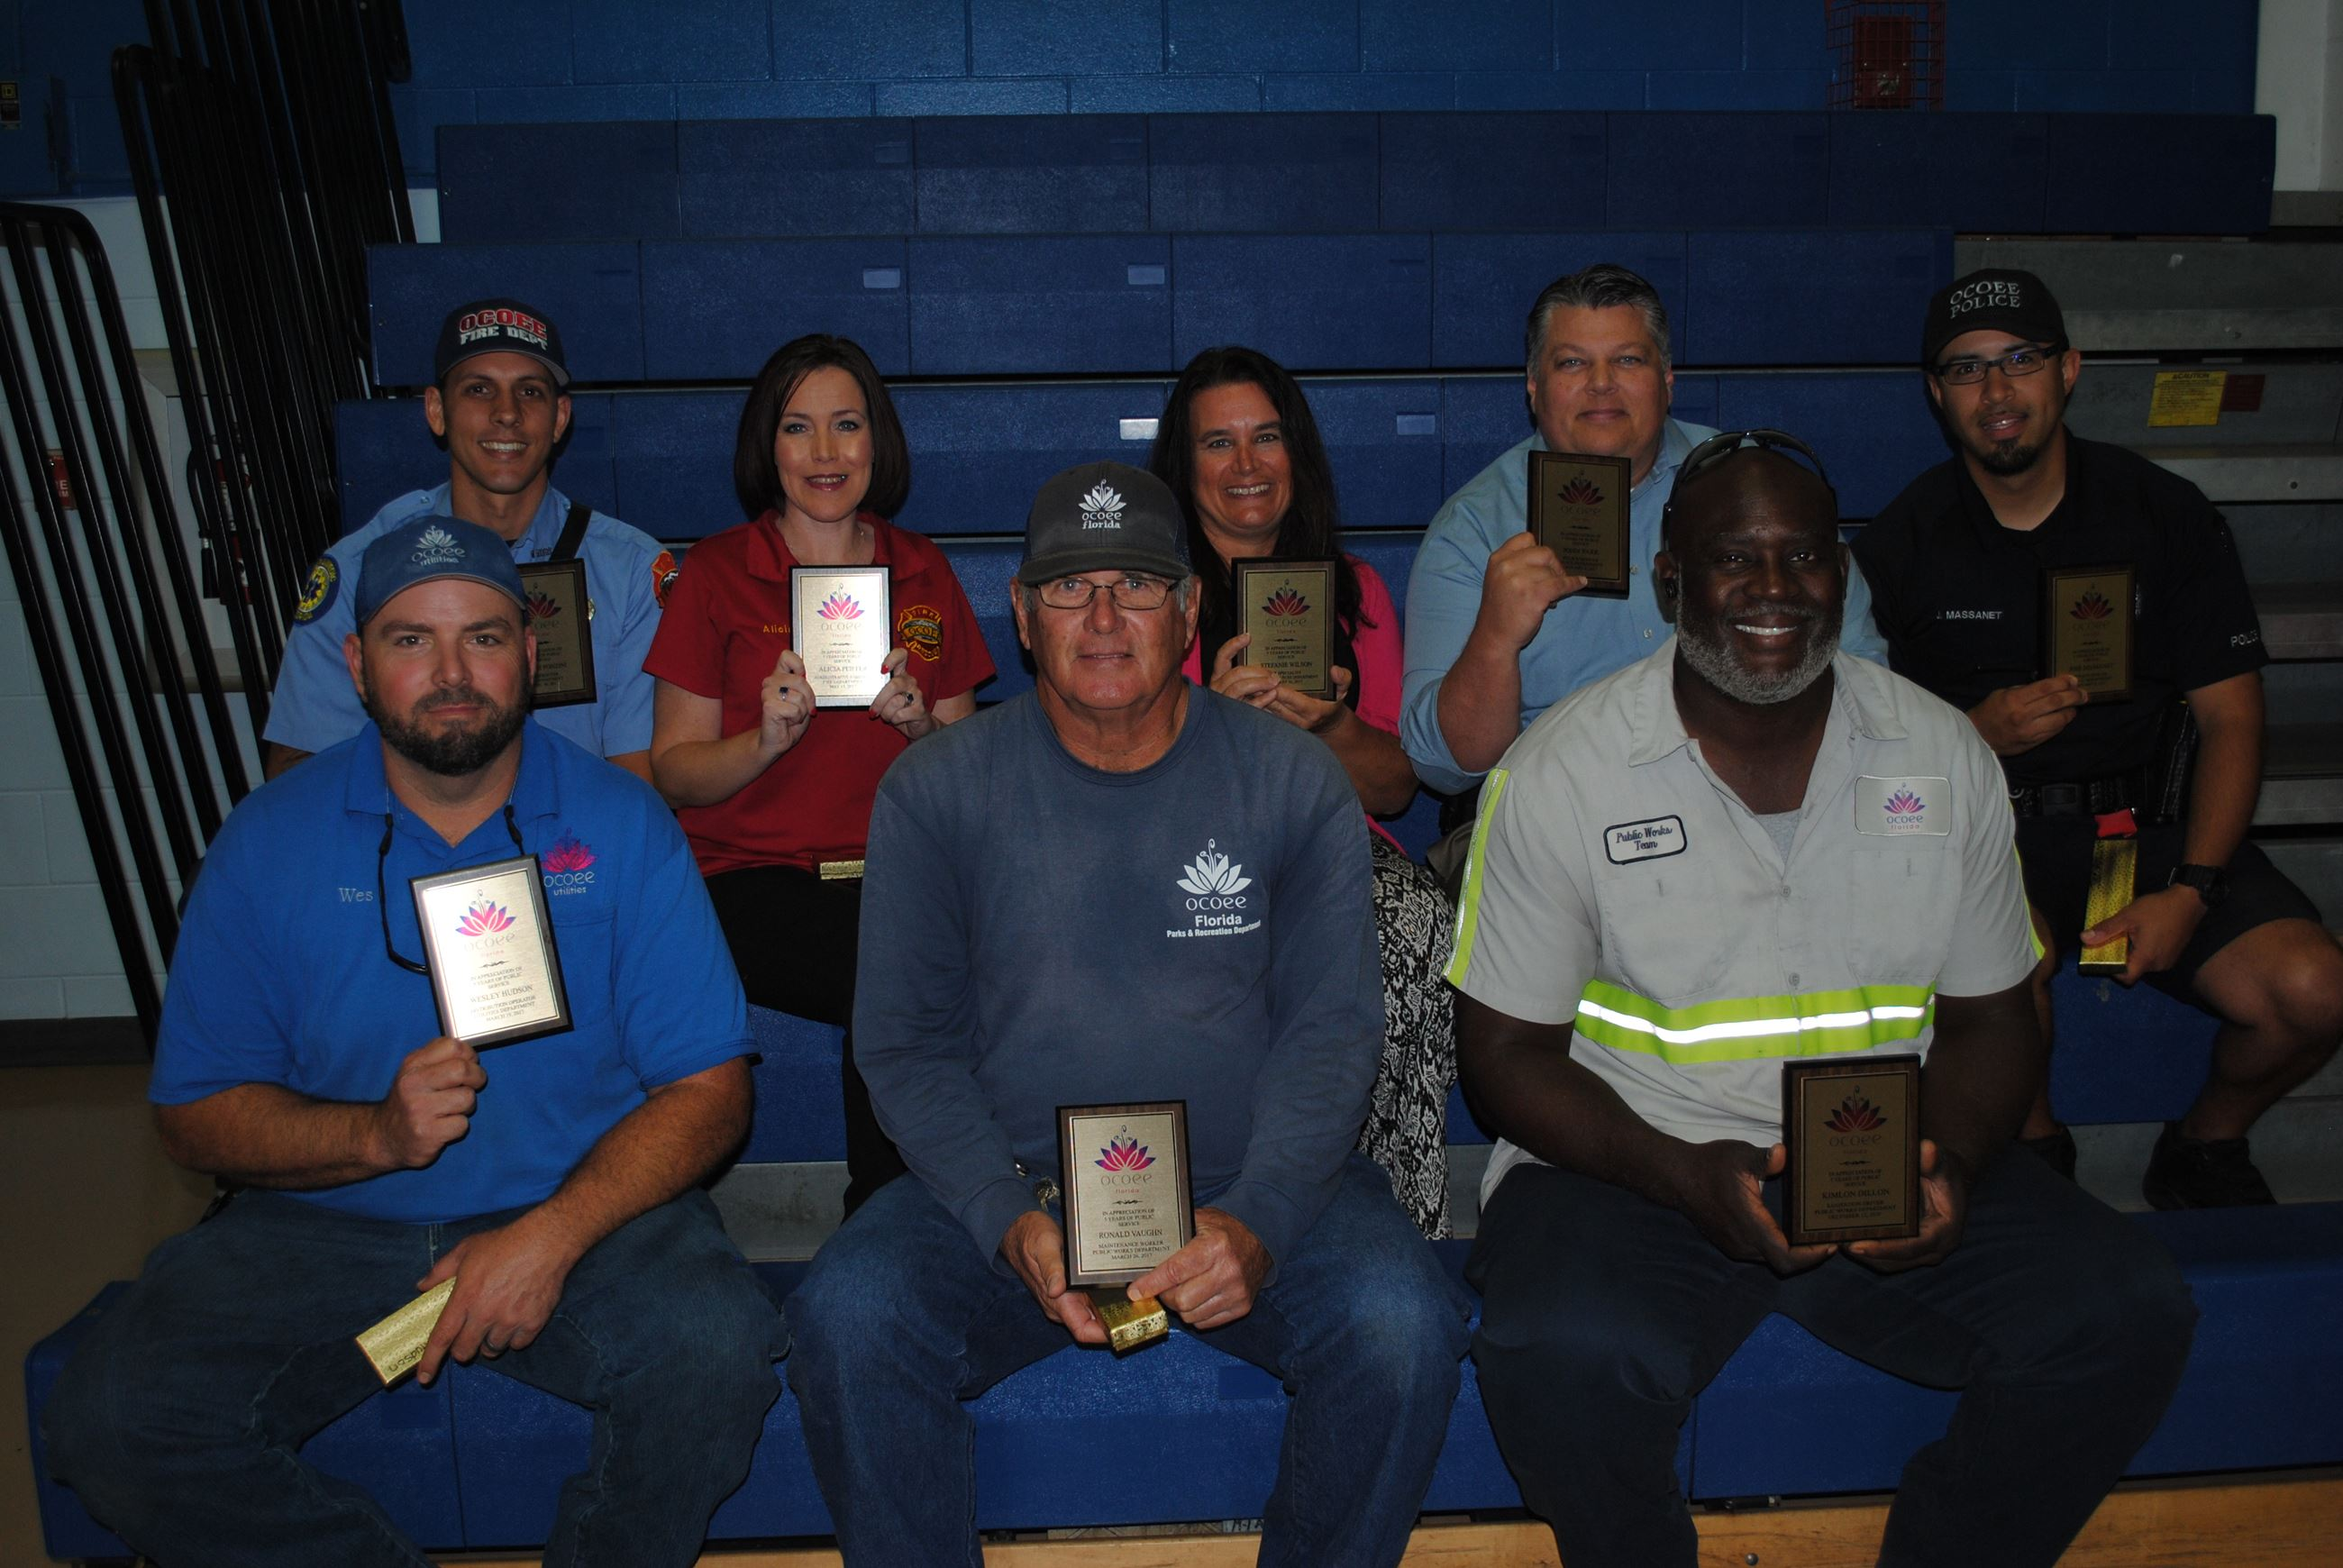 Employee Luncheon April 13, 2017 - 5 years of service